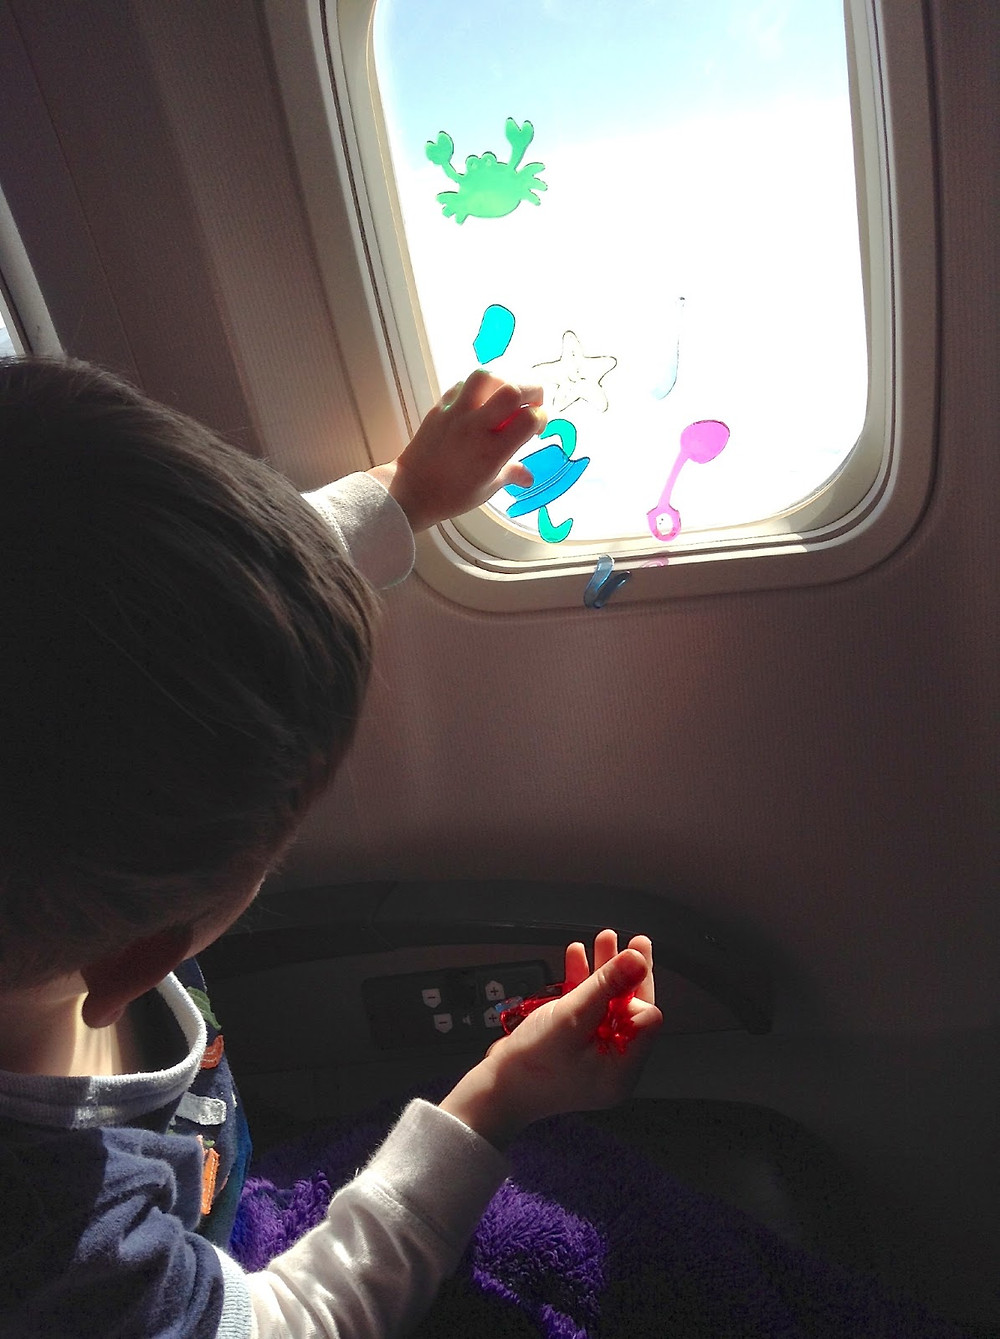 Traveling with Kids? No Problem. Take it Easy with These Simple Tips and Innovations.